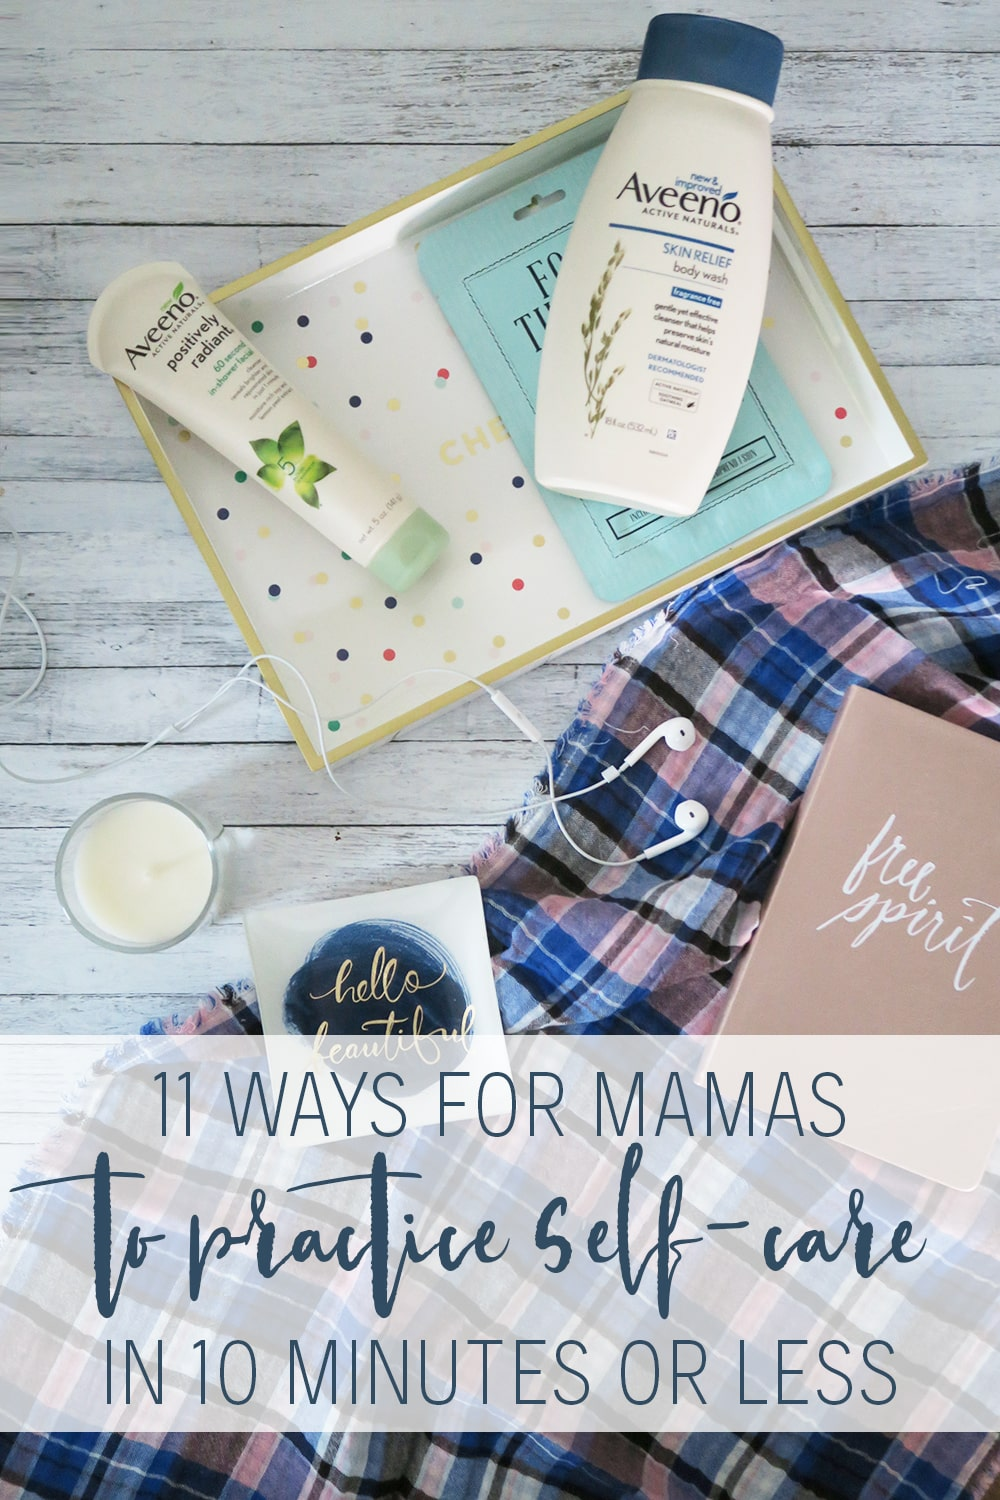 When it comes to self care for moms, it can feel like it's impossible to take time for yourself. But if you've got 10 minutes, this list can make it feasible and *maybe* even somewhat easy!